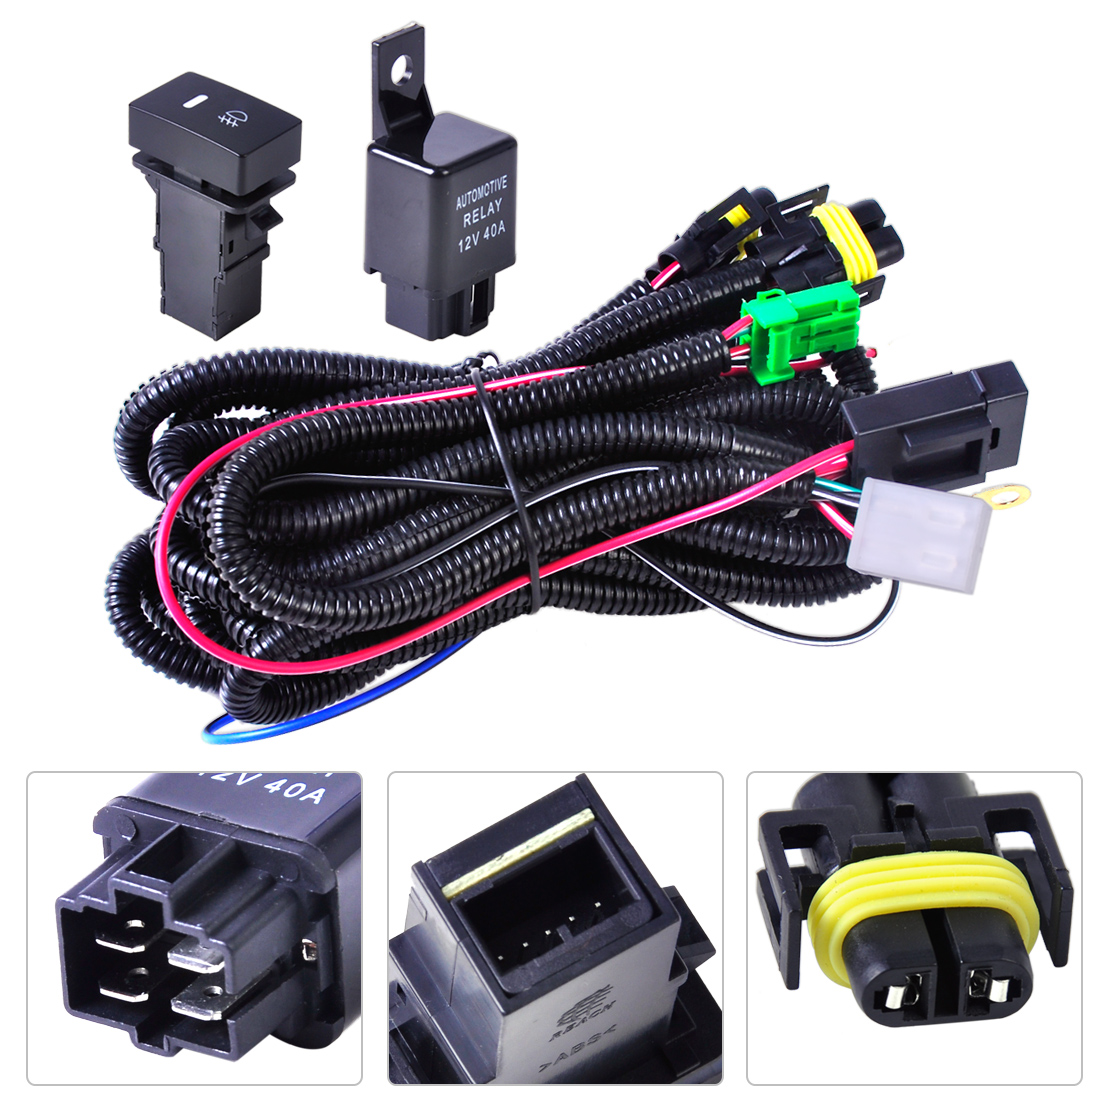 1 wiring harness sockets switch for h11 fog light lamp ford focus 2001 mustang fog light wiring harness at eliteediting.co